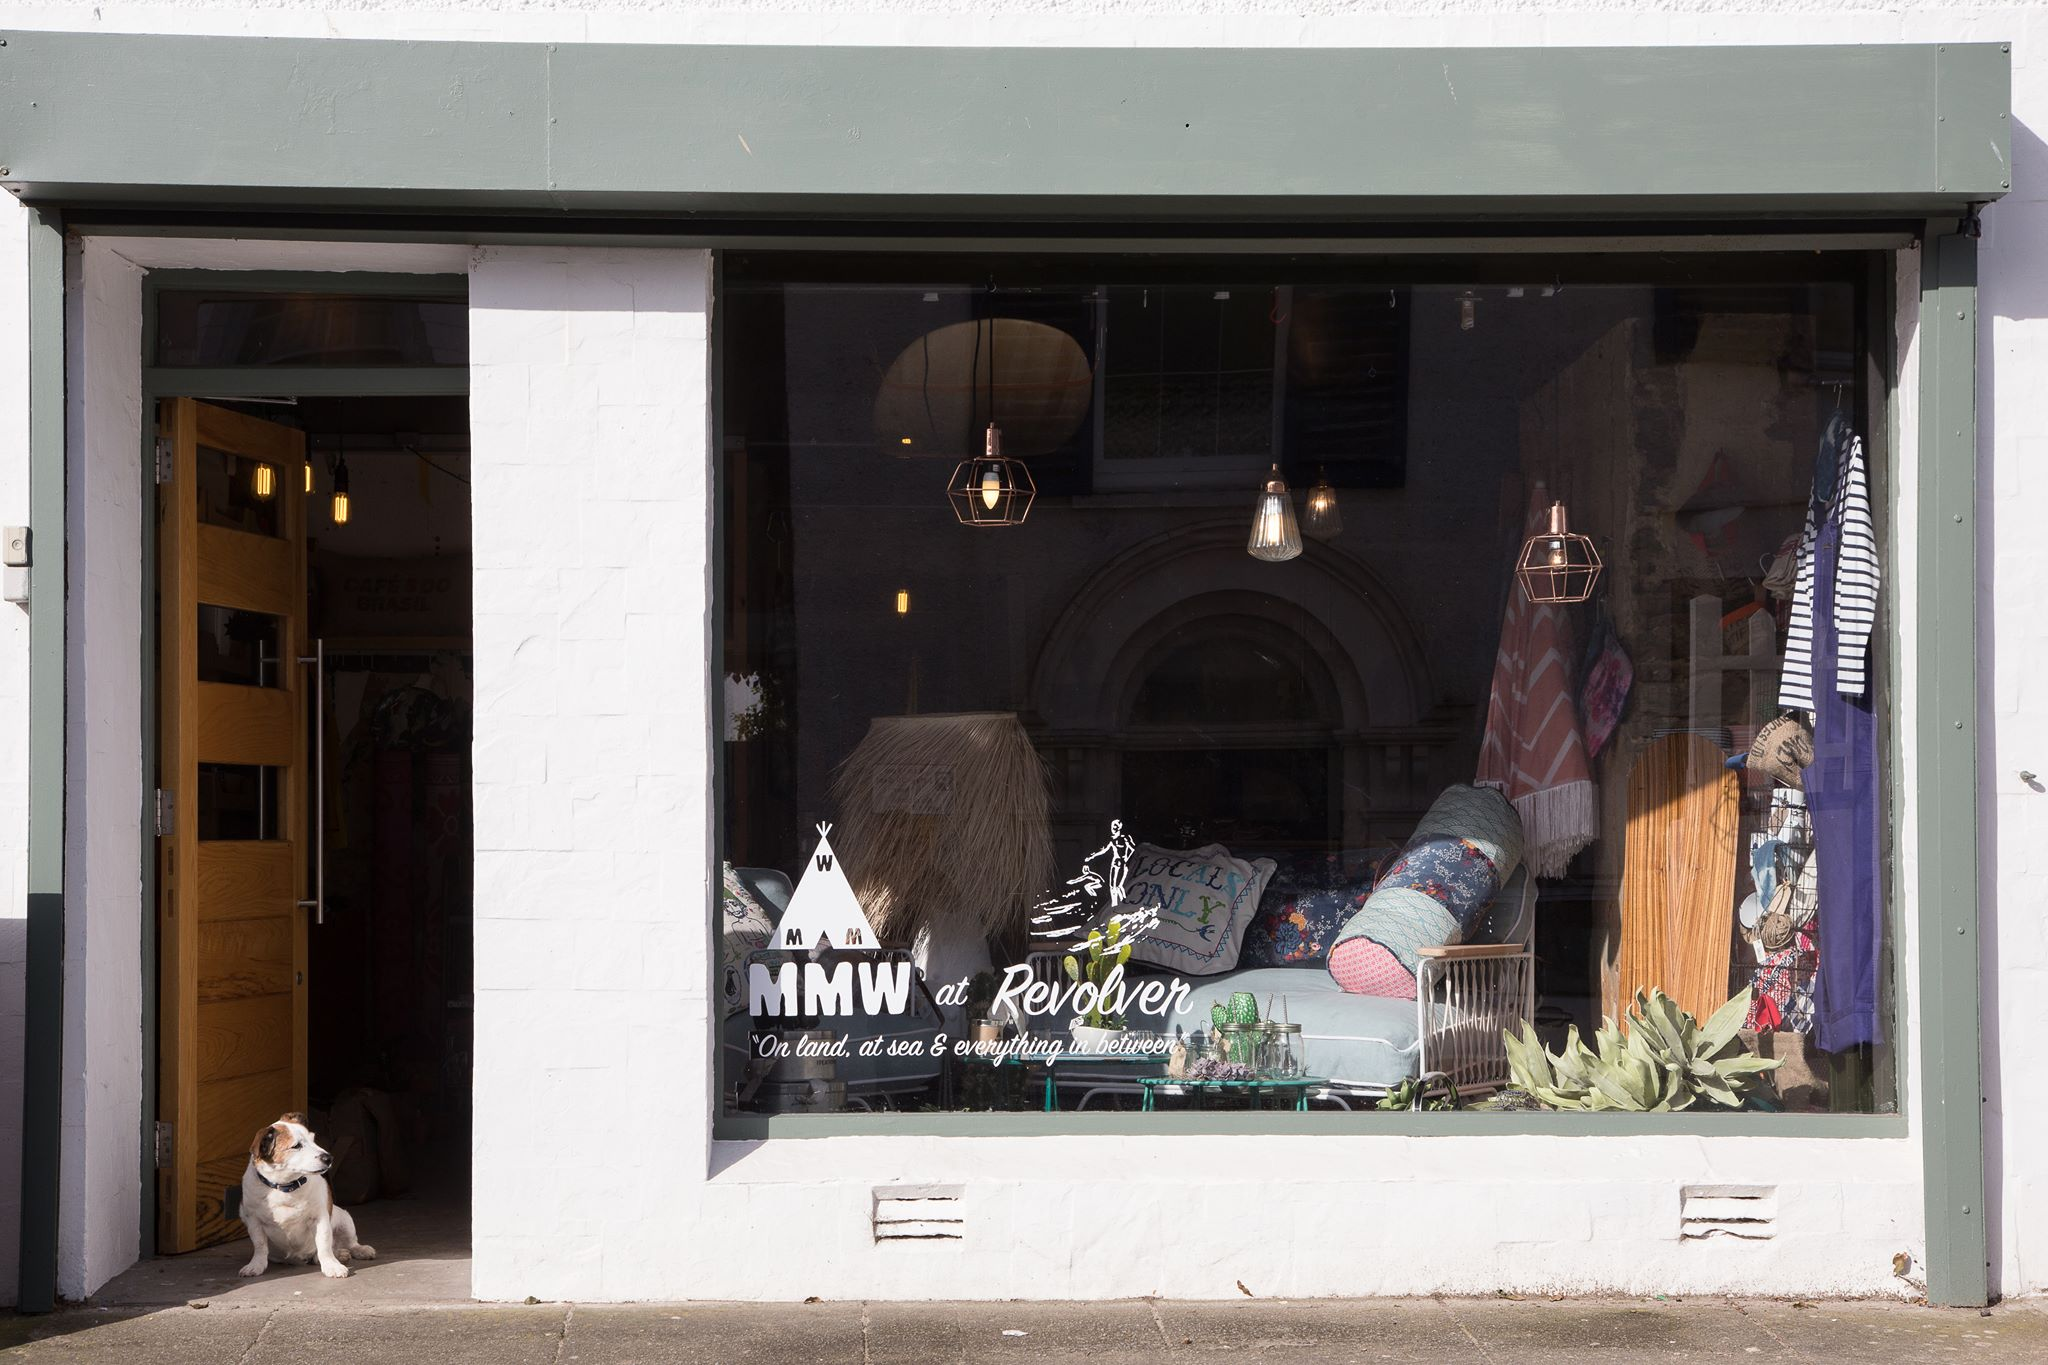 Check out new shops and cafe culture in Newquay -